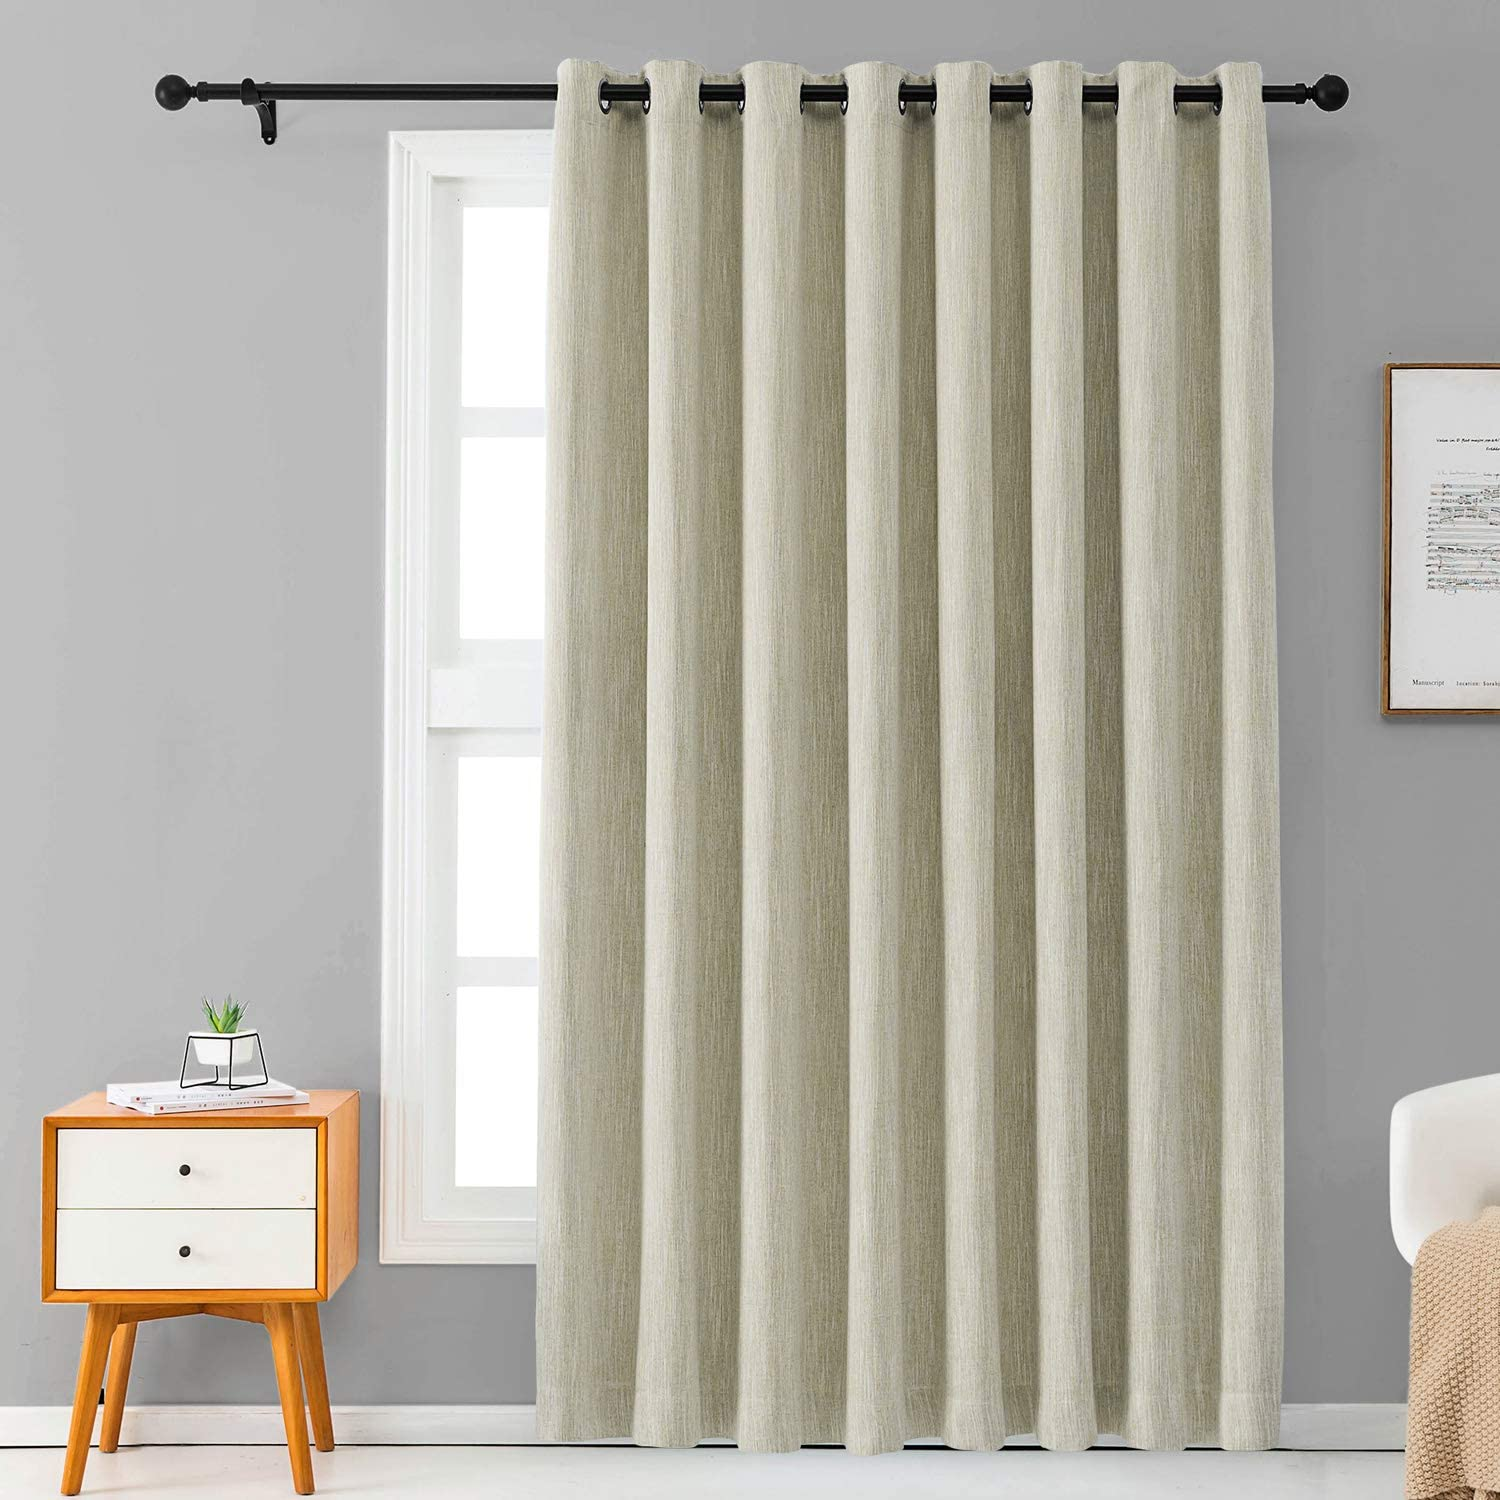 Melodieux Elegant Cotton Wide Blackout Curtains for Sliding Glass Door Living Room Thermal Insulated Grommet Drapes, 100 by 96 Inch, Beige (1 Panel)